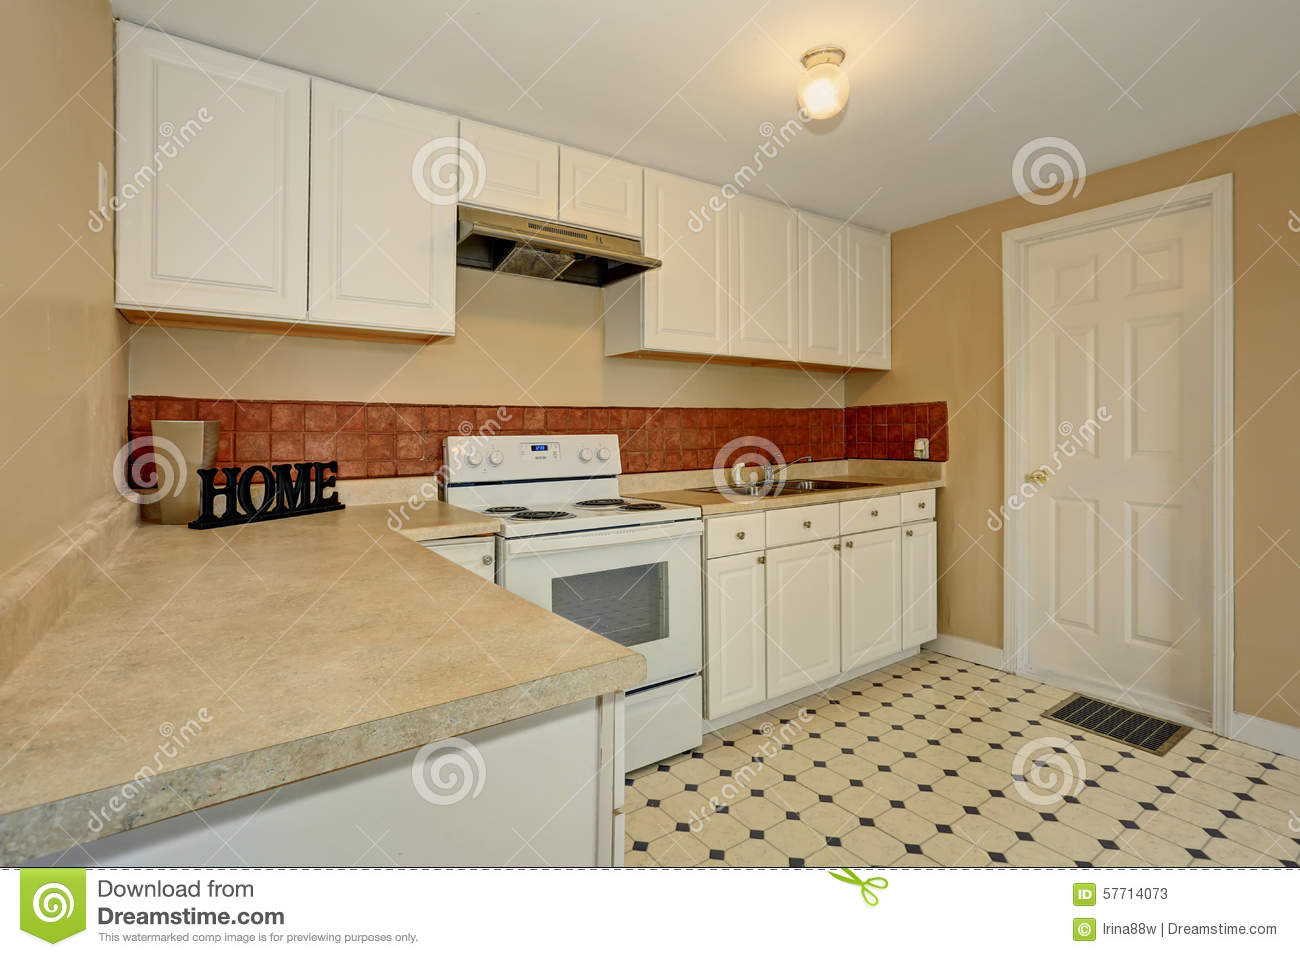 Very Simple Kitchen With Tile Floor Stock Image Image Of Stove